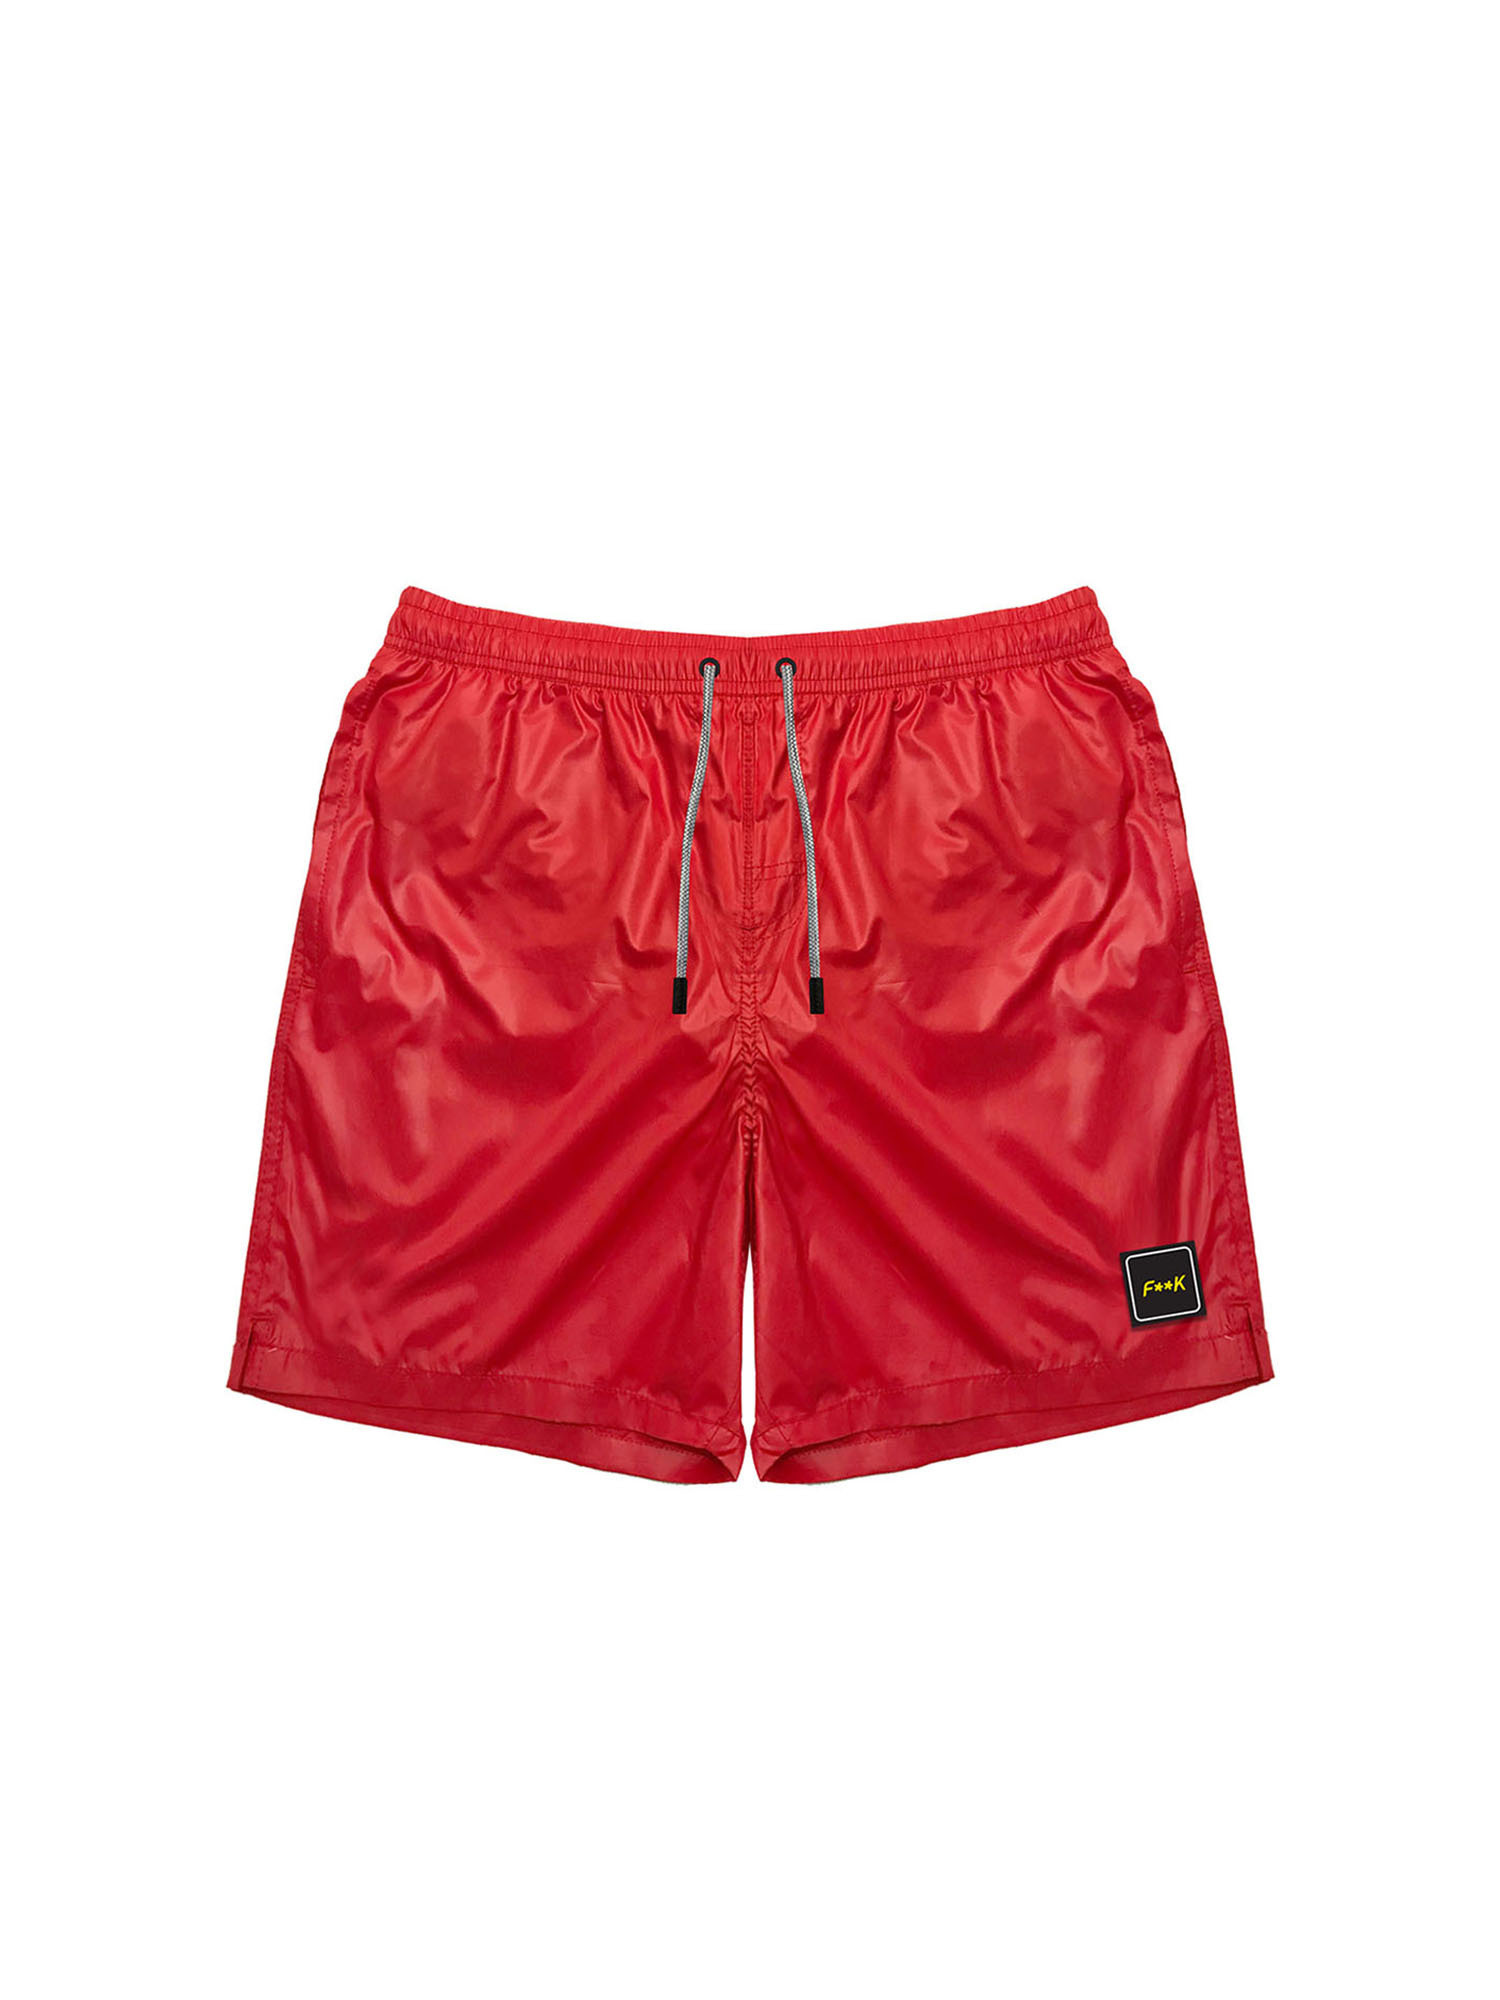 Boxer mare, Rosso, large image number 0